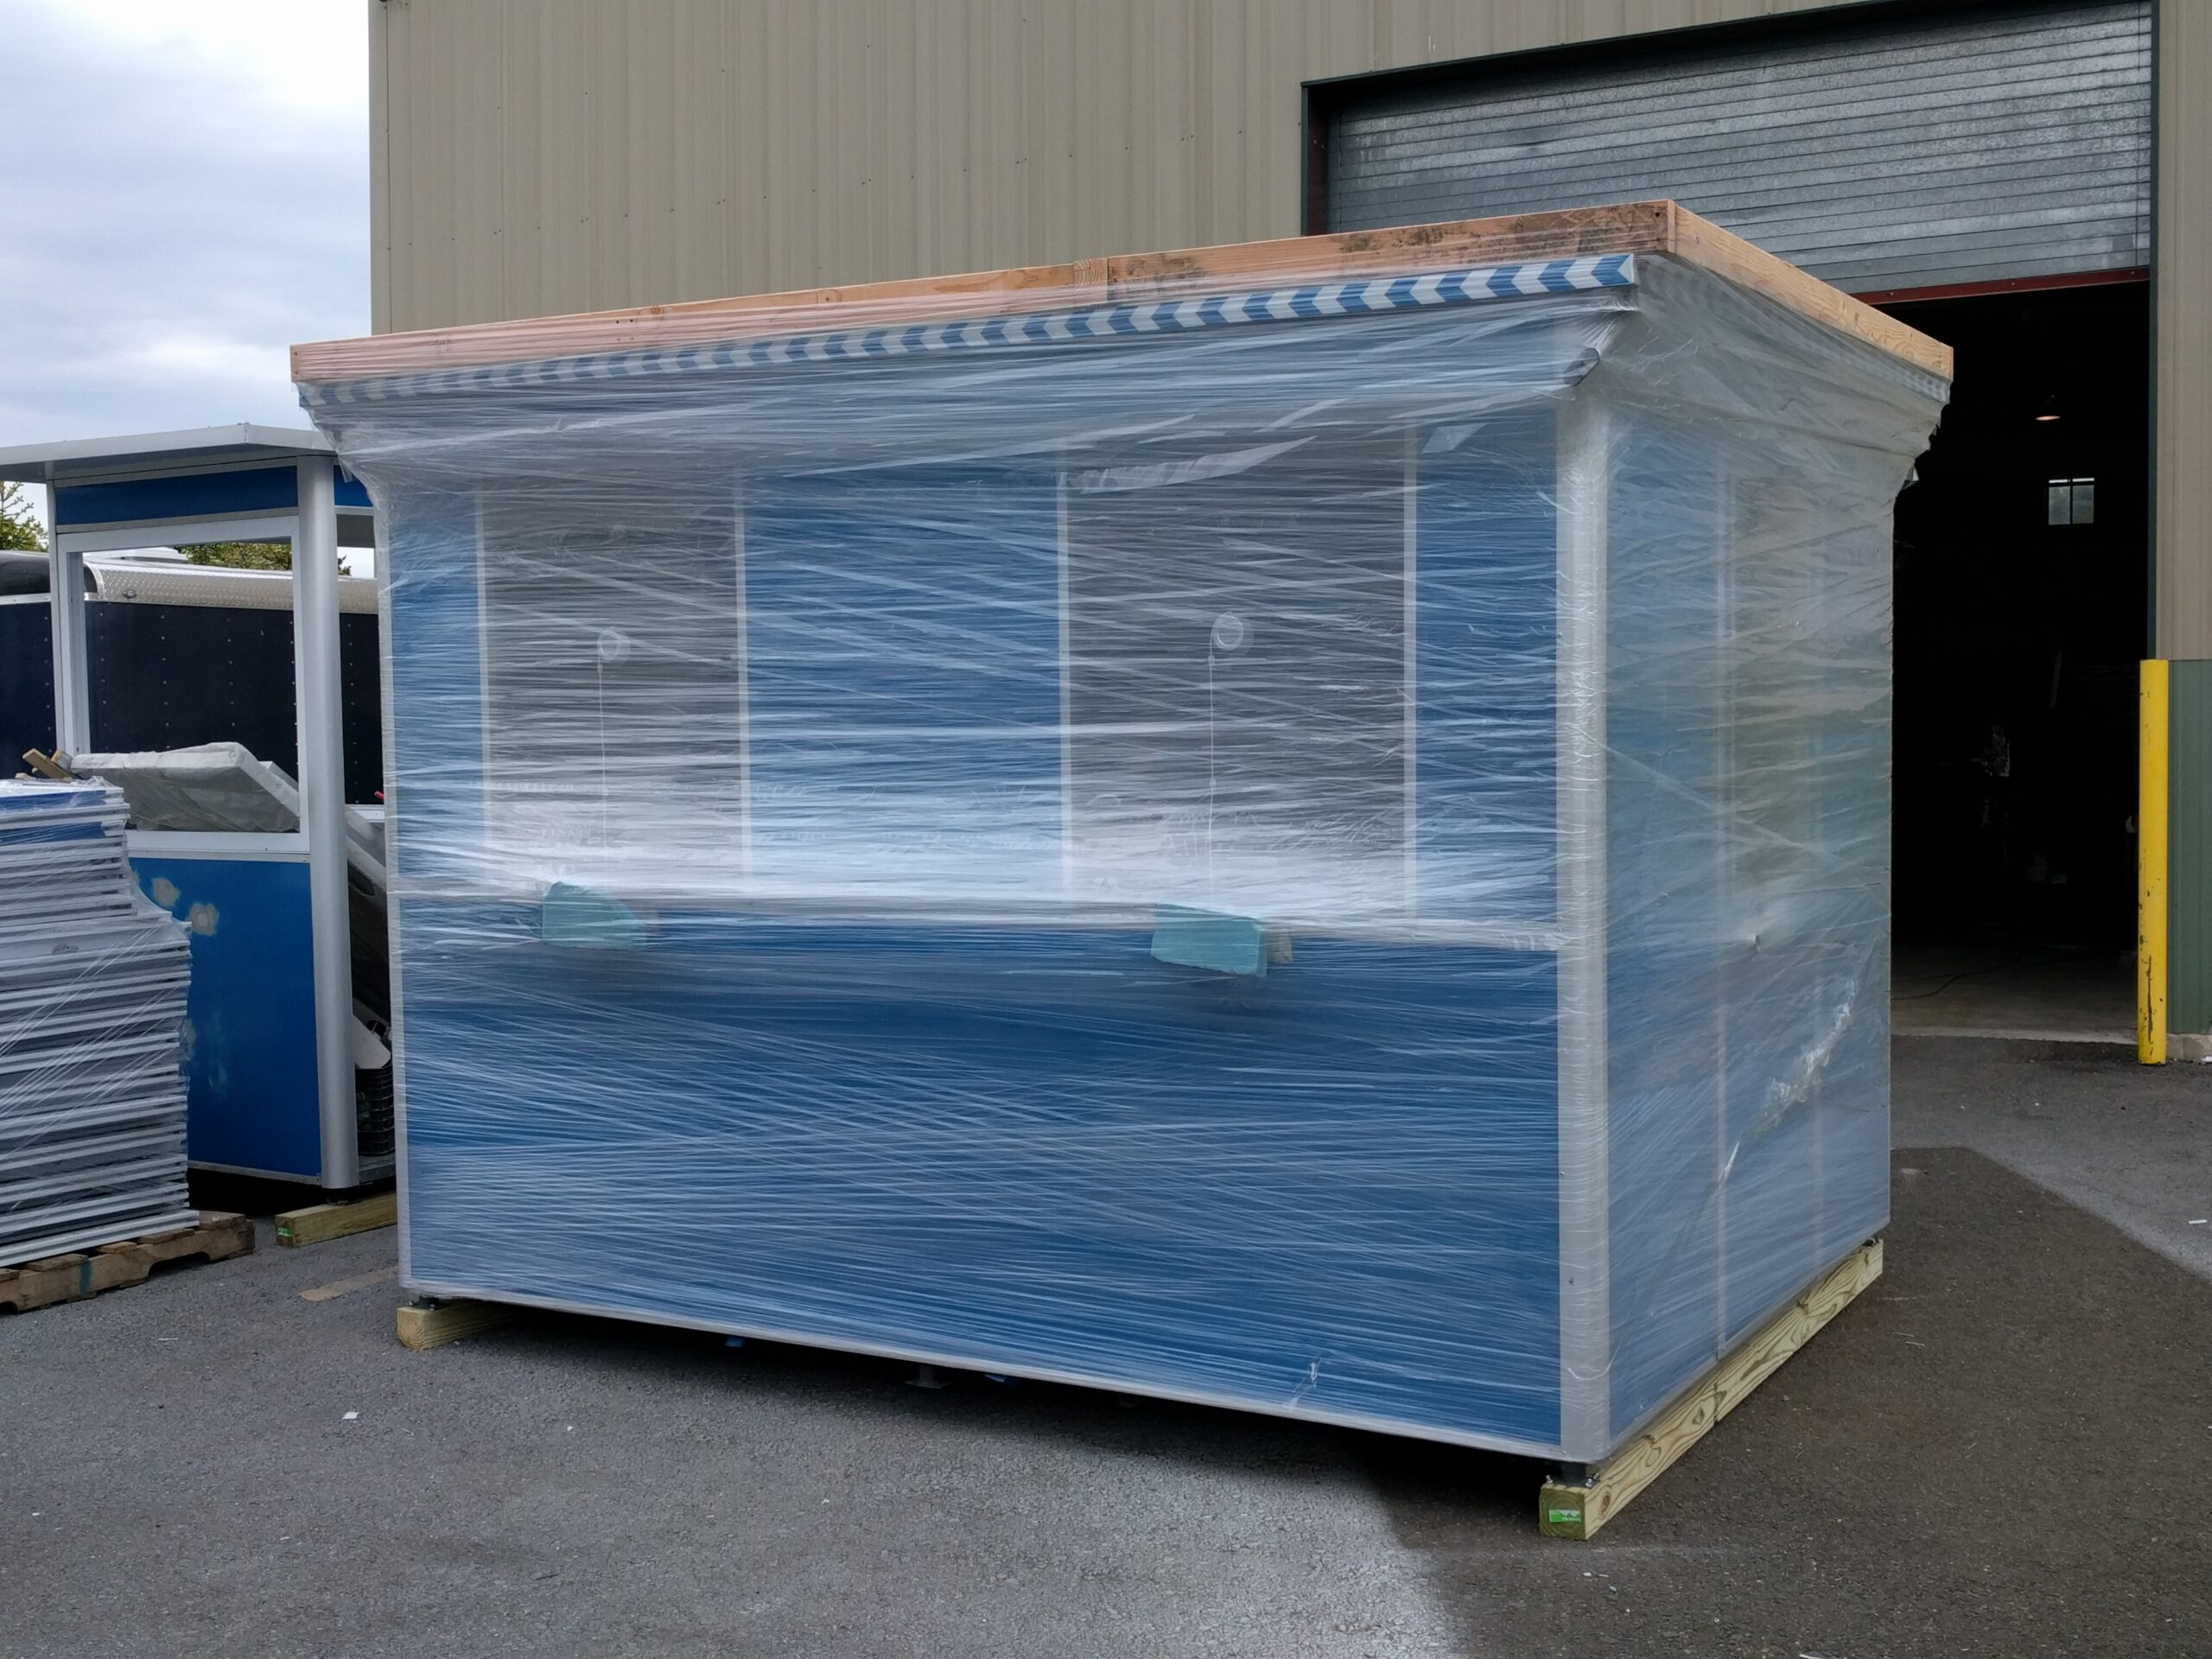 8x10 Ticket Booth ready for Delivery in Miramar, FL with Ticket Transaction Windows